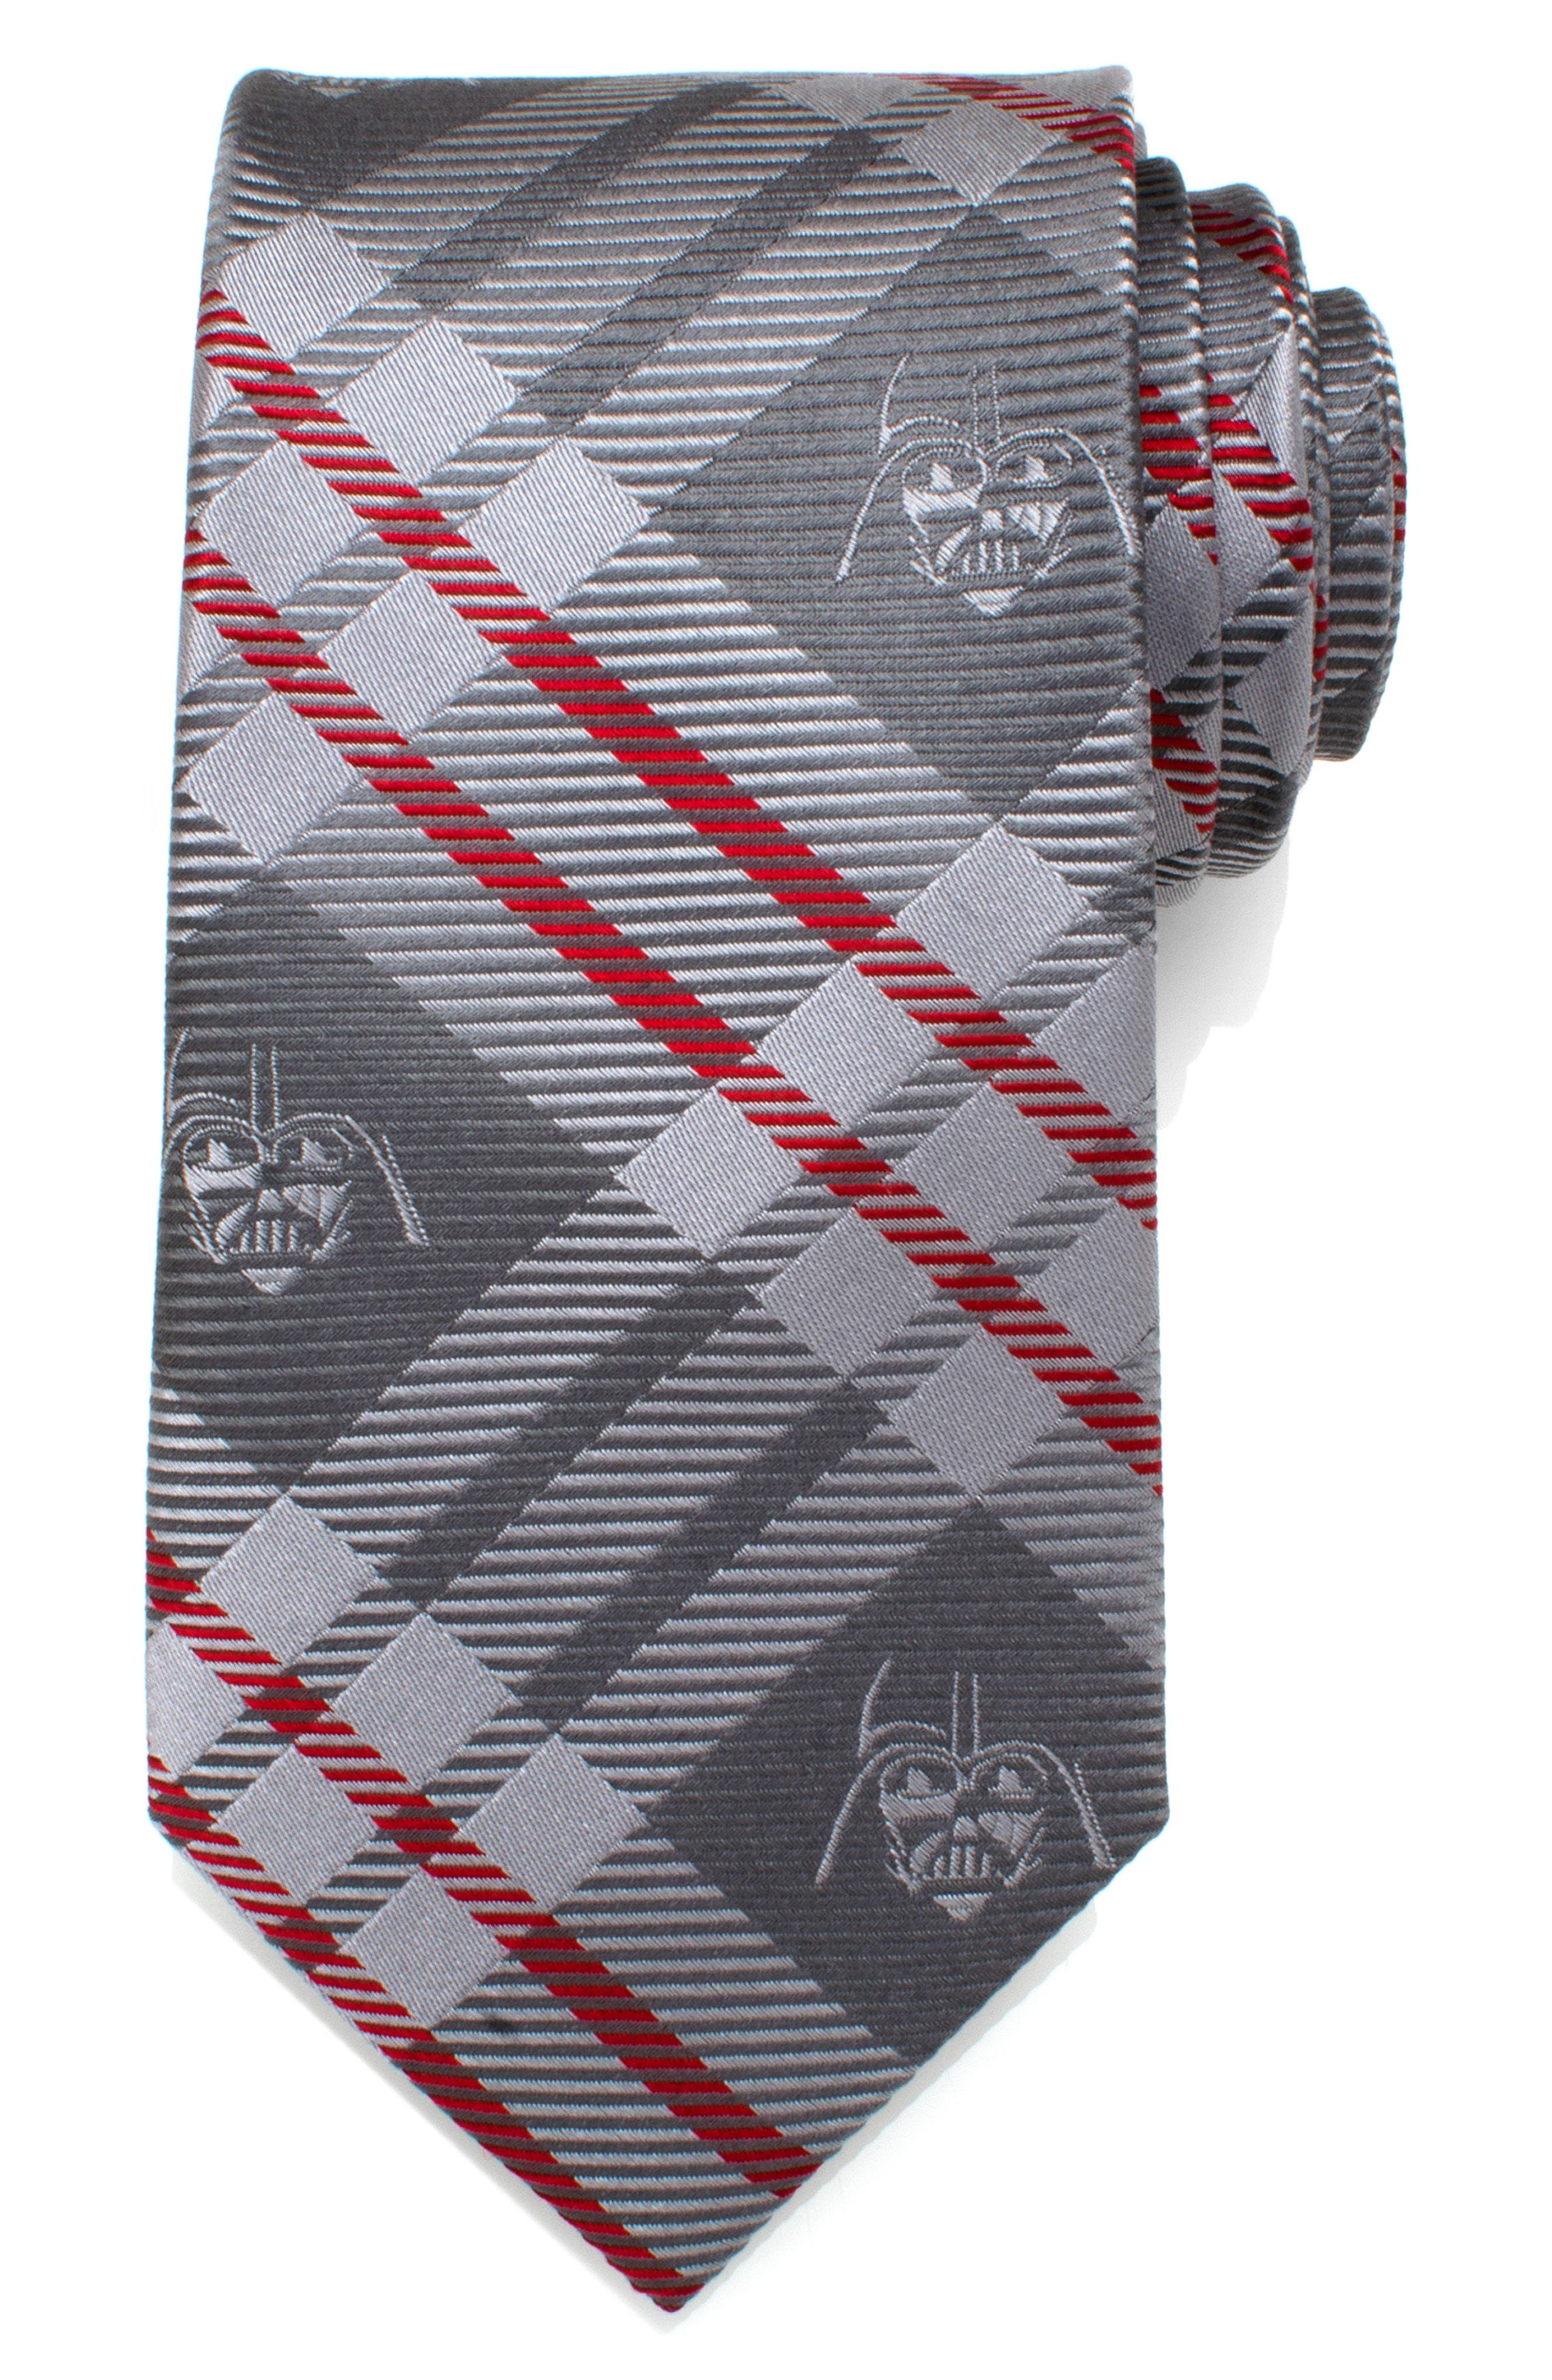 Star Wars<sup>™</sup> Darth Vader Plaid Silk Tie,                             Main thumbnail 1, color,                             GRAY